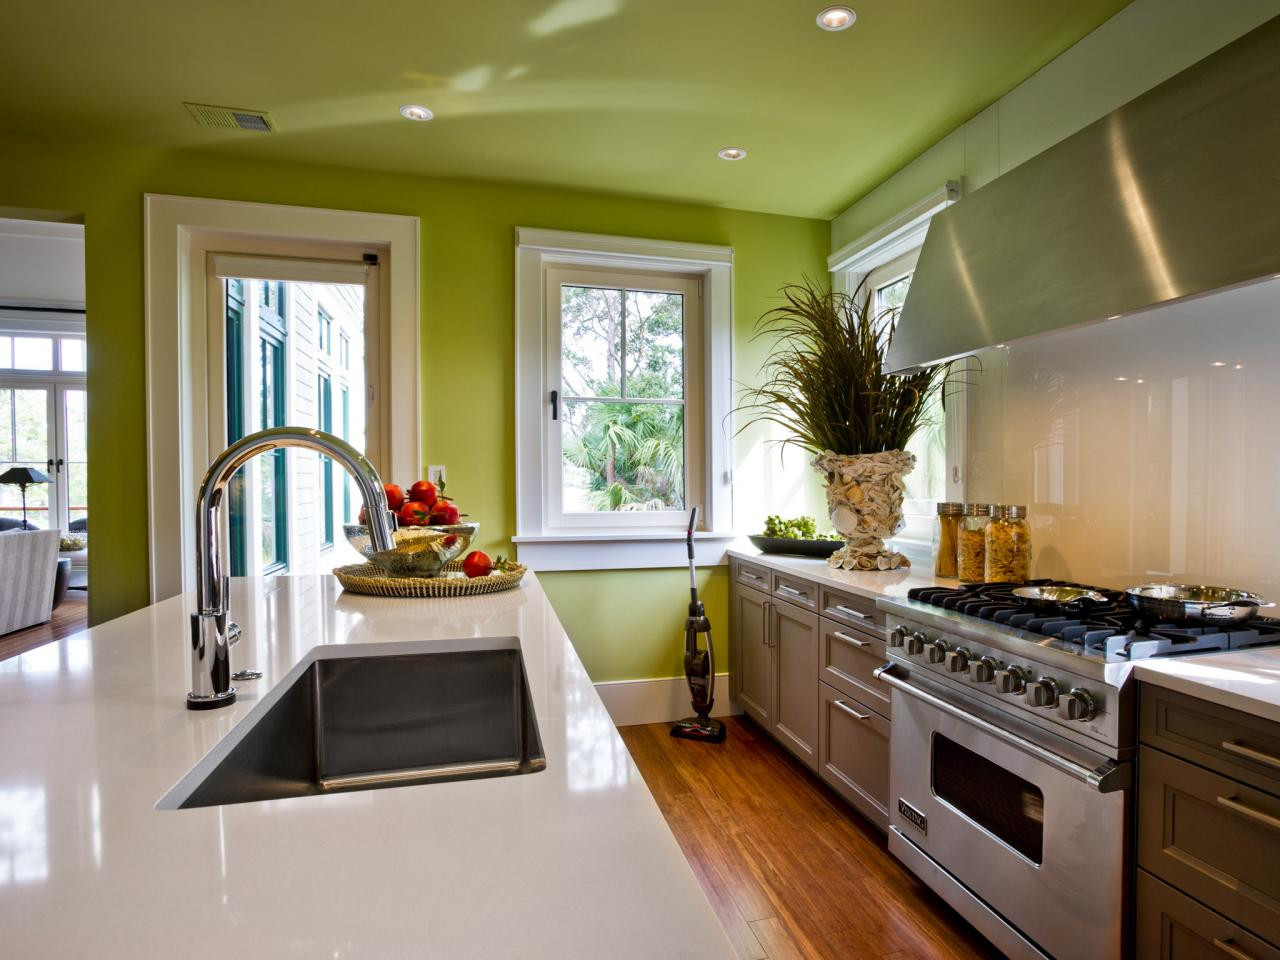 Best ideas about Kitchen Paint Color Ideas . Save or Pin 30 Best Kitchen Color Paint Ideas 2018 Interior Now.